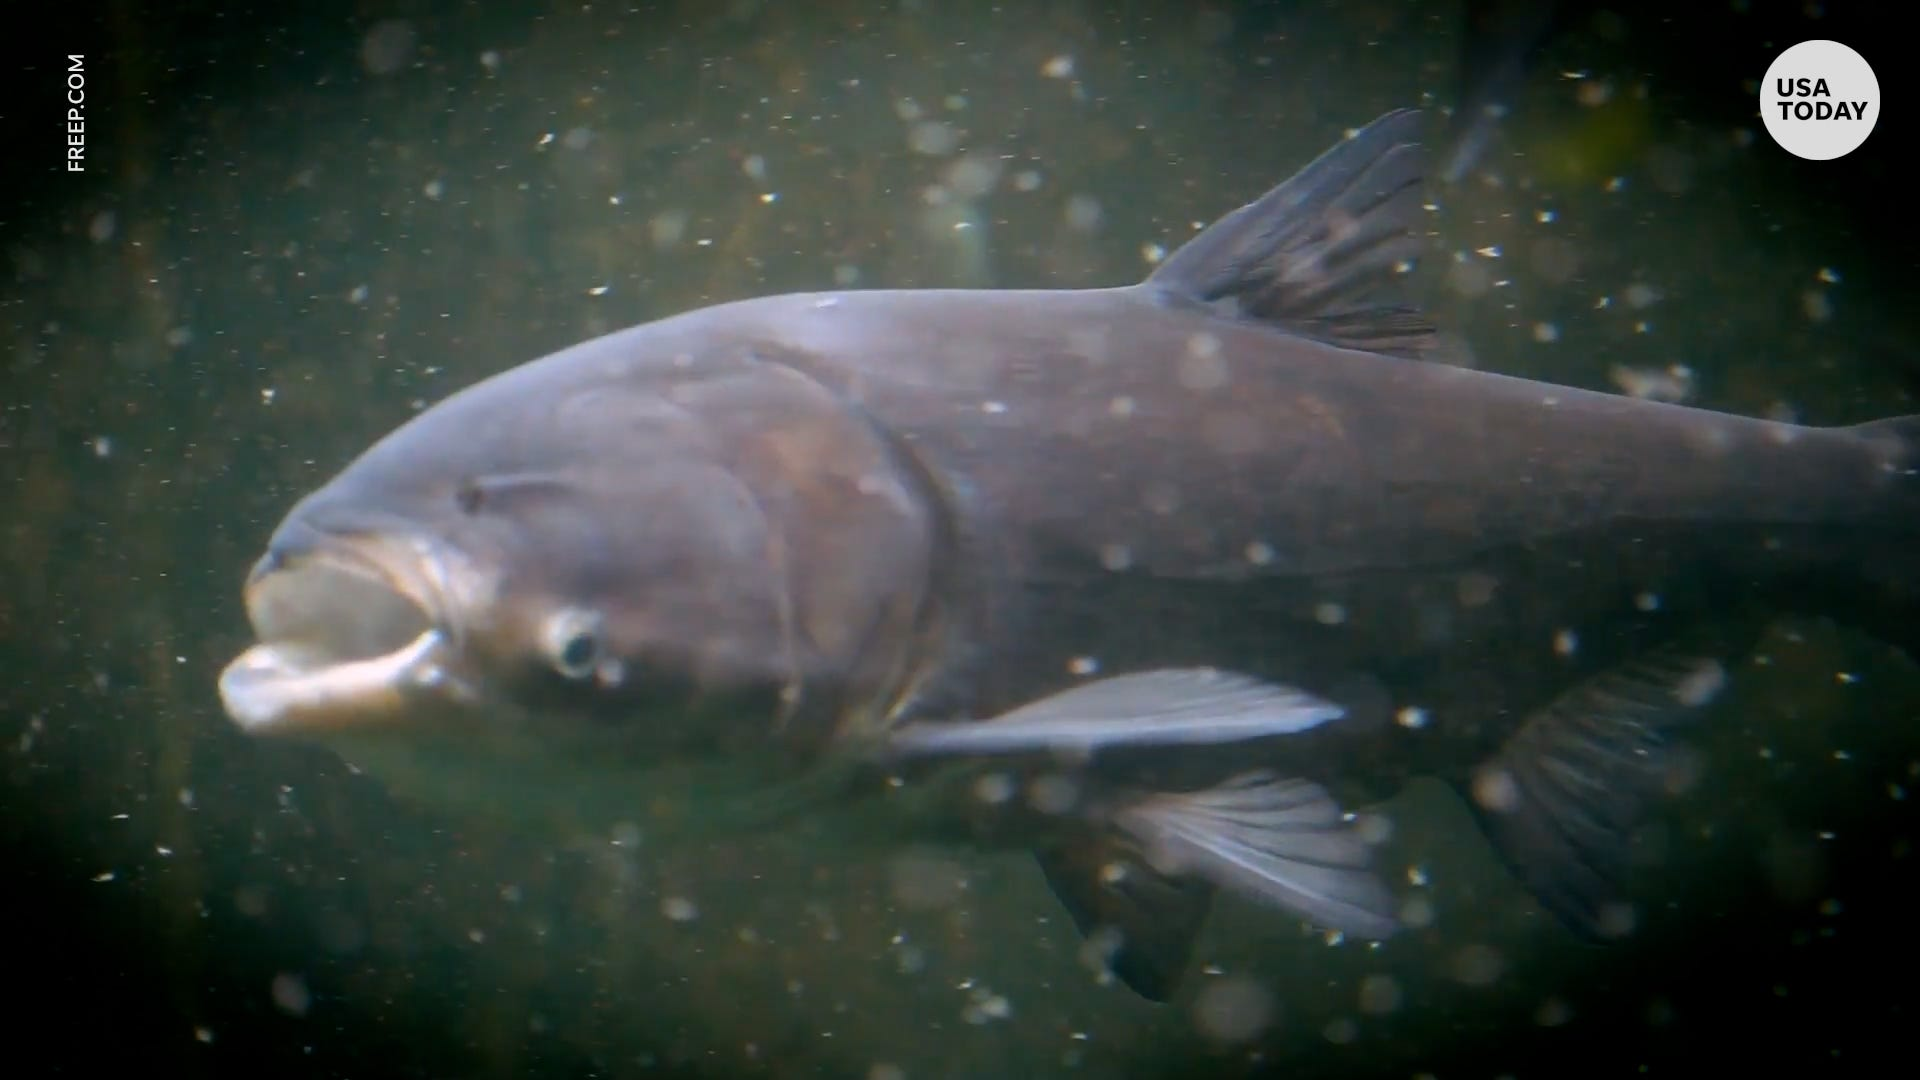 Fish will get new name to appeal to eaters